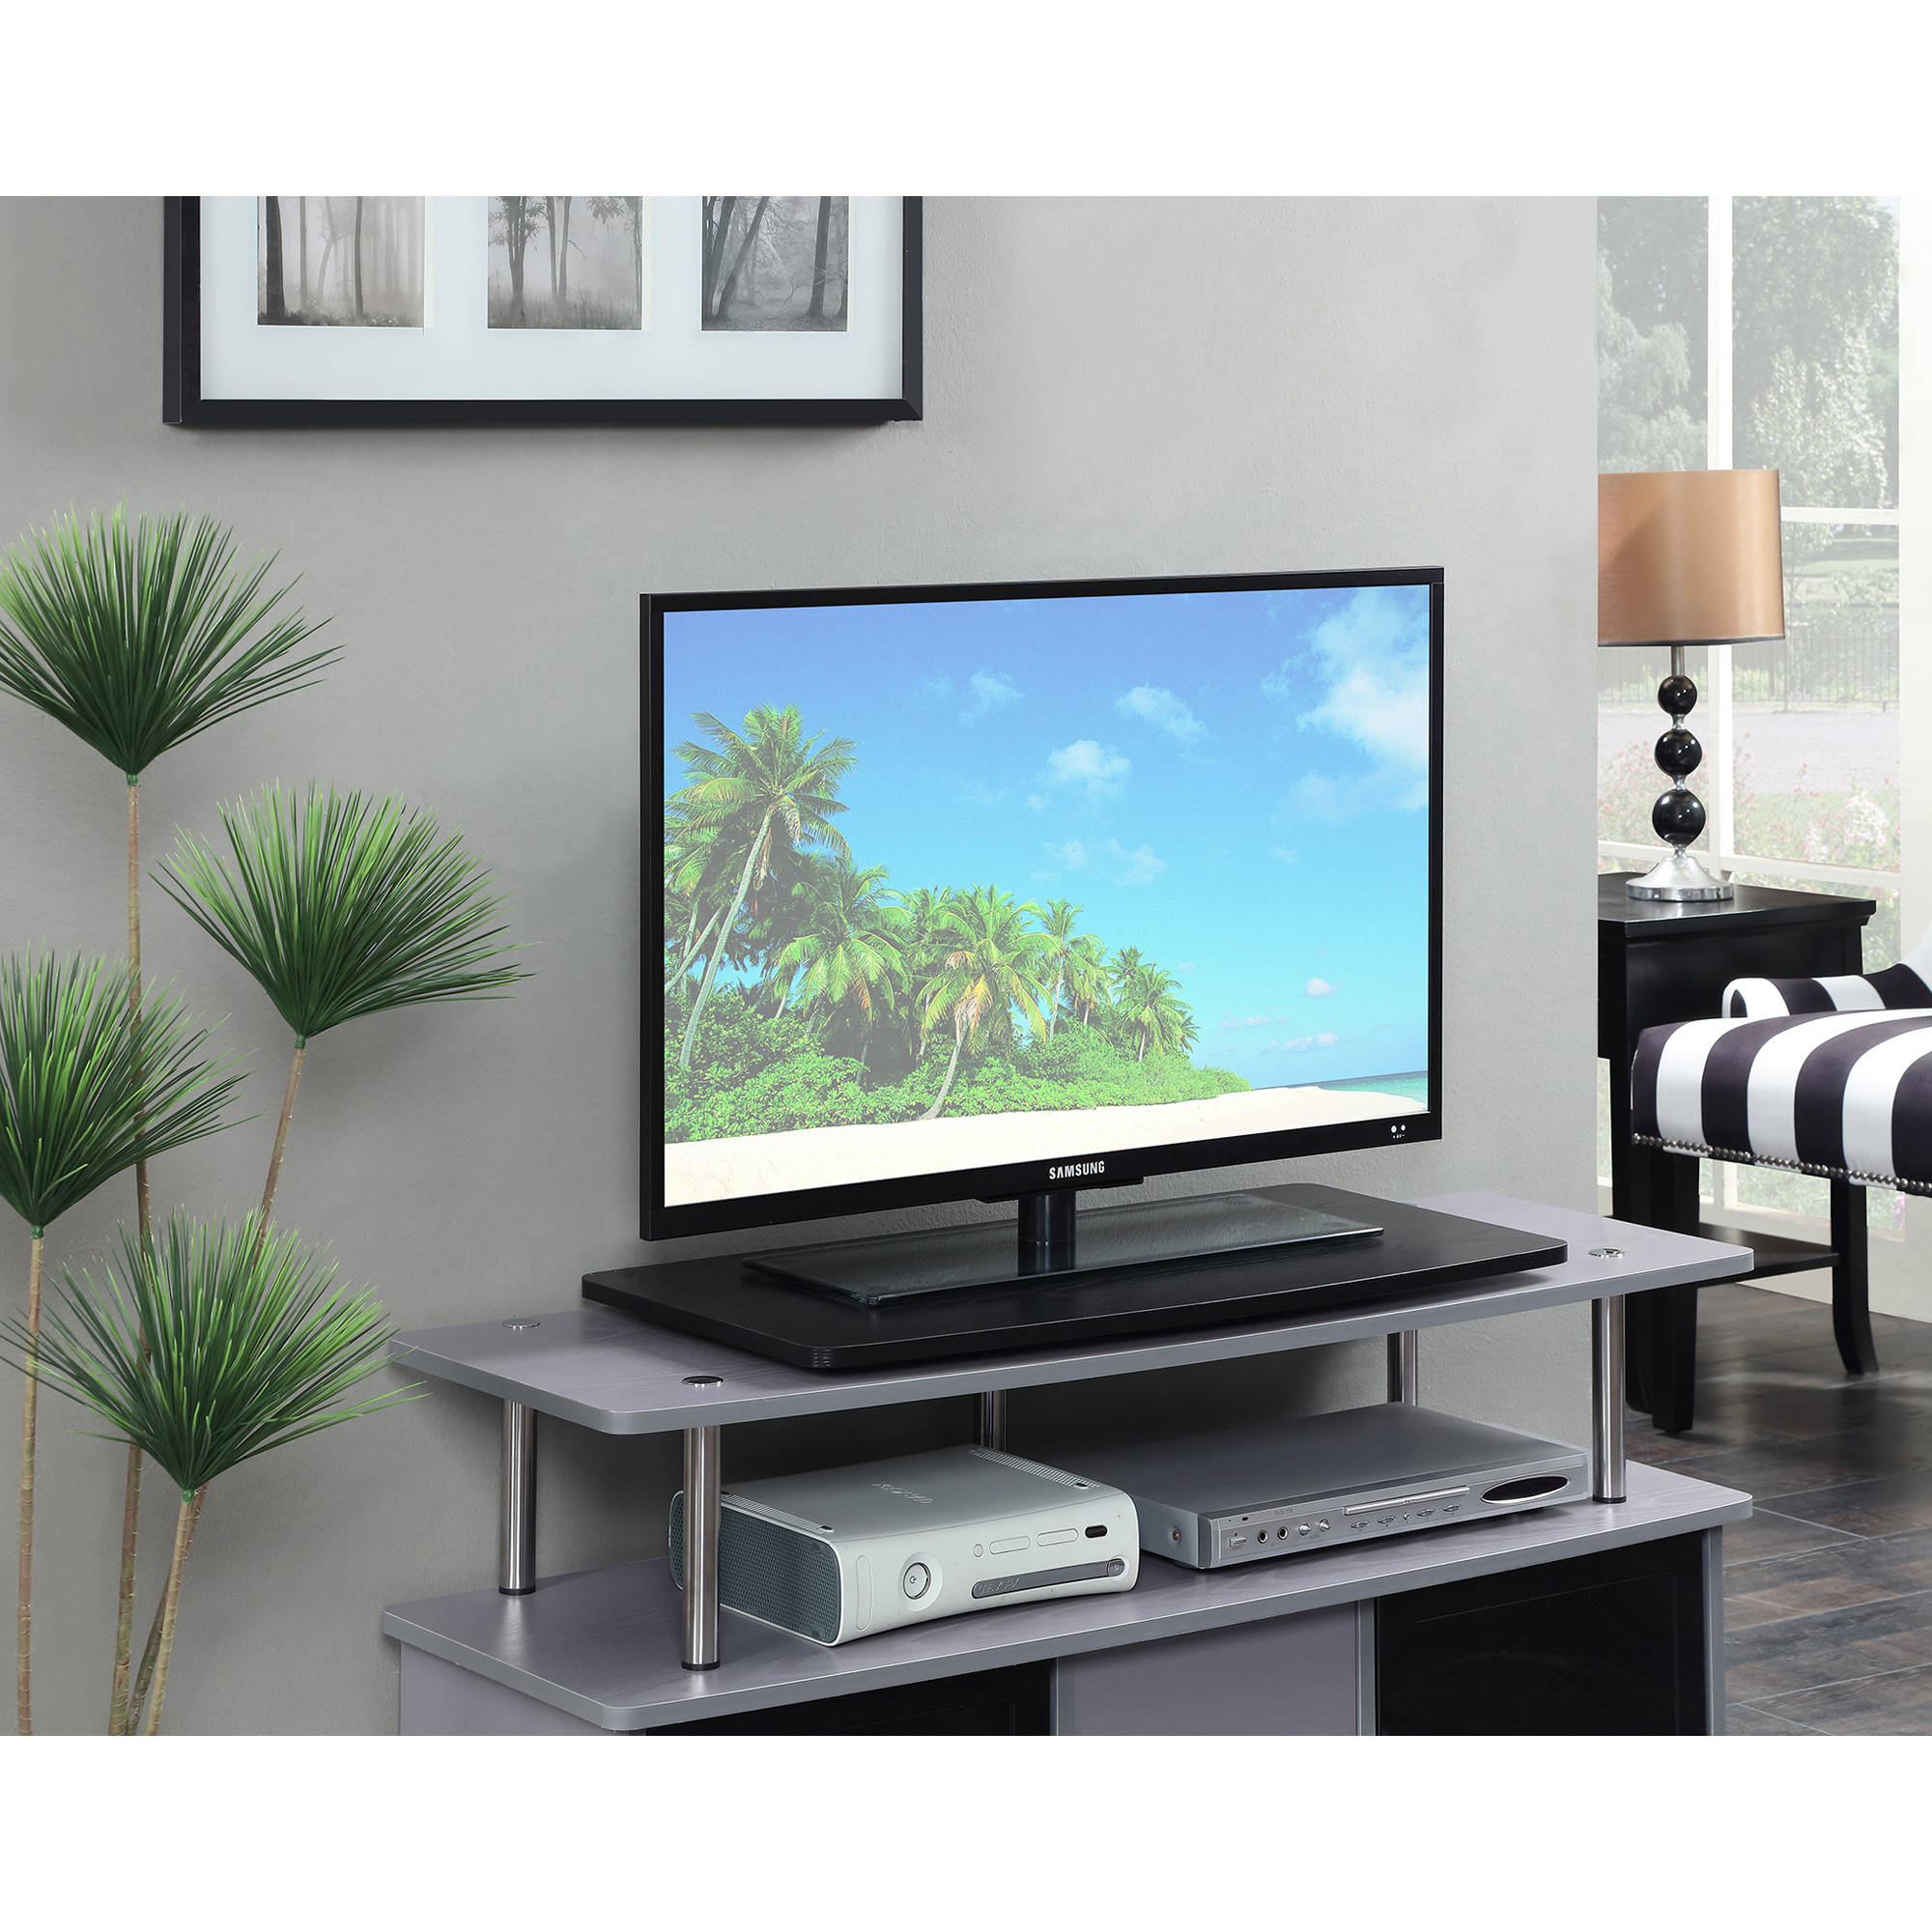 "Designs 2 Go XL Swivel TV Stand for TV or Monitor, for Screens up to 32"" by Convenience Concepts"